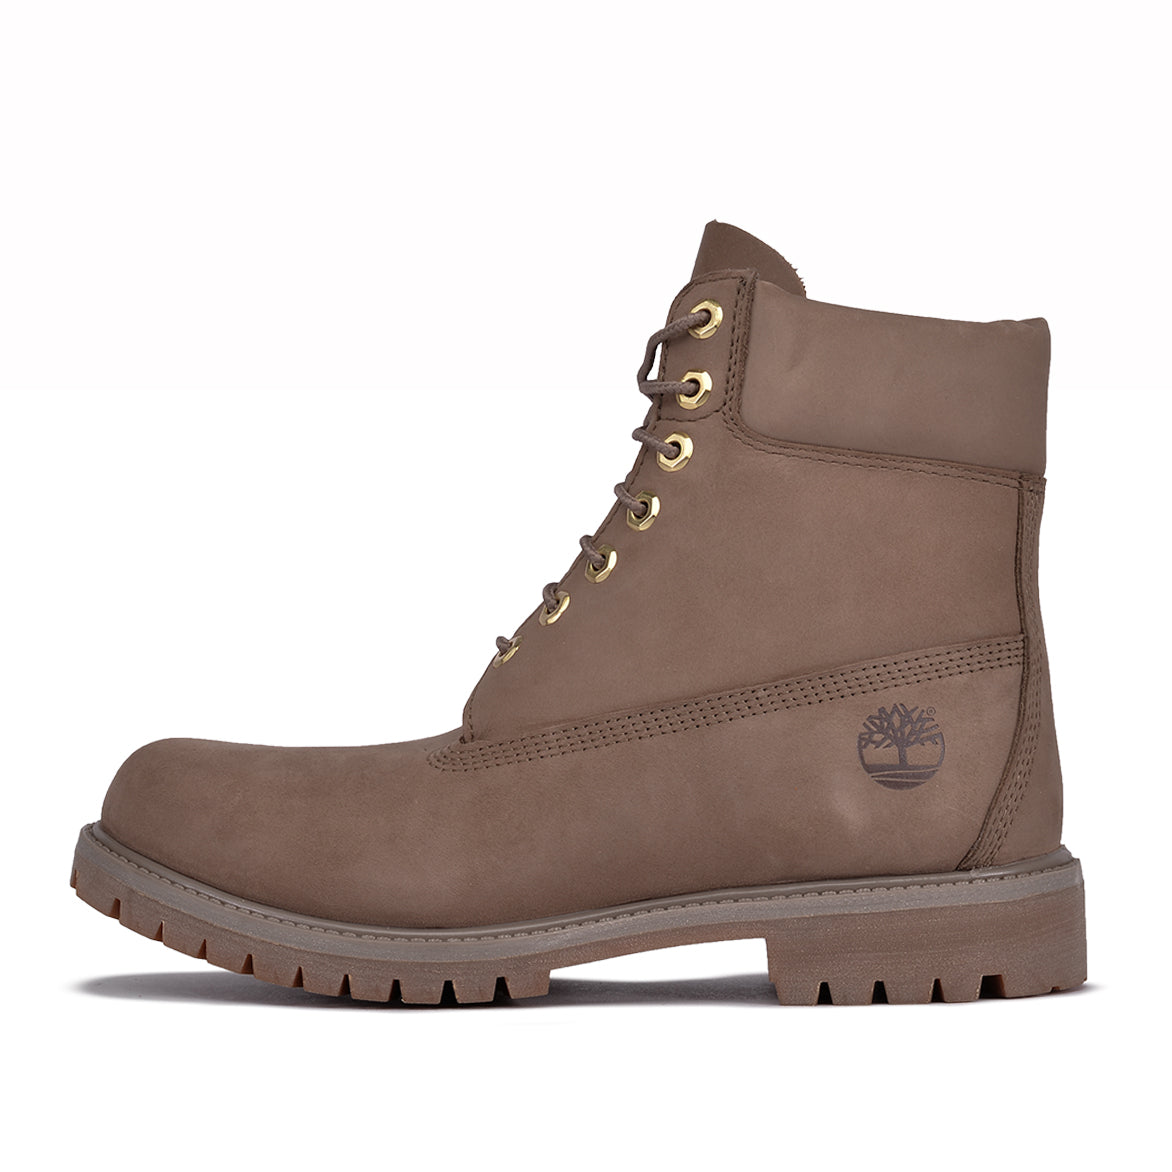 WATERPROOF 6 INCH PREMIUM BOOT - DARK BEIGE